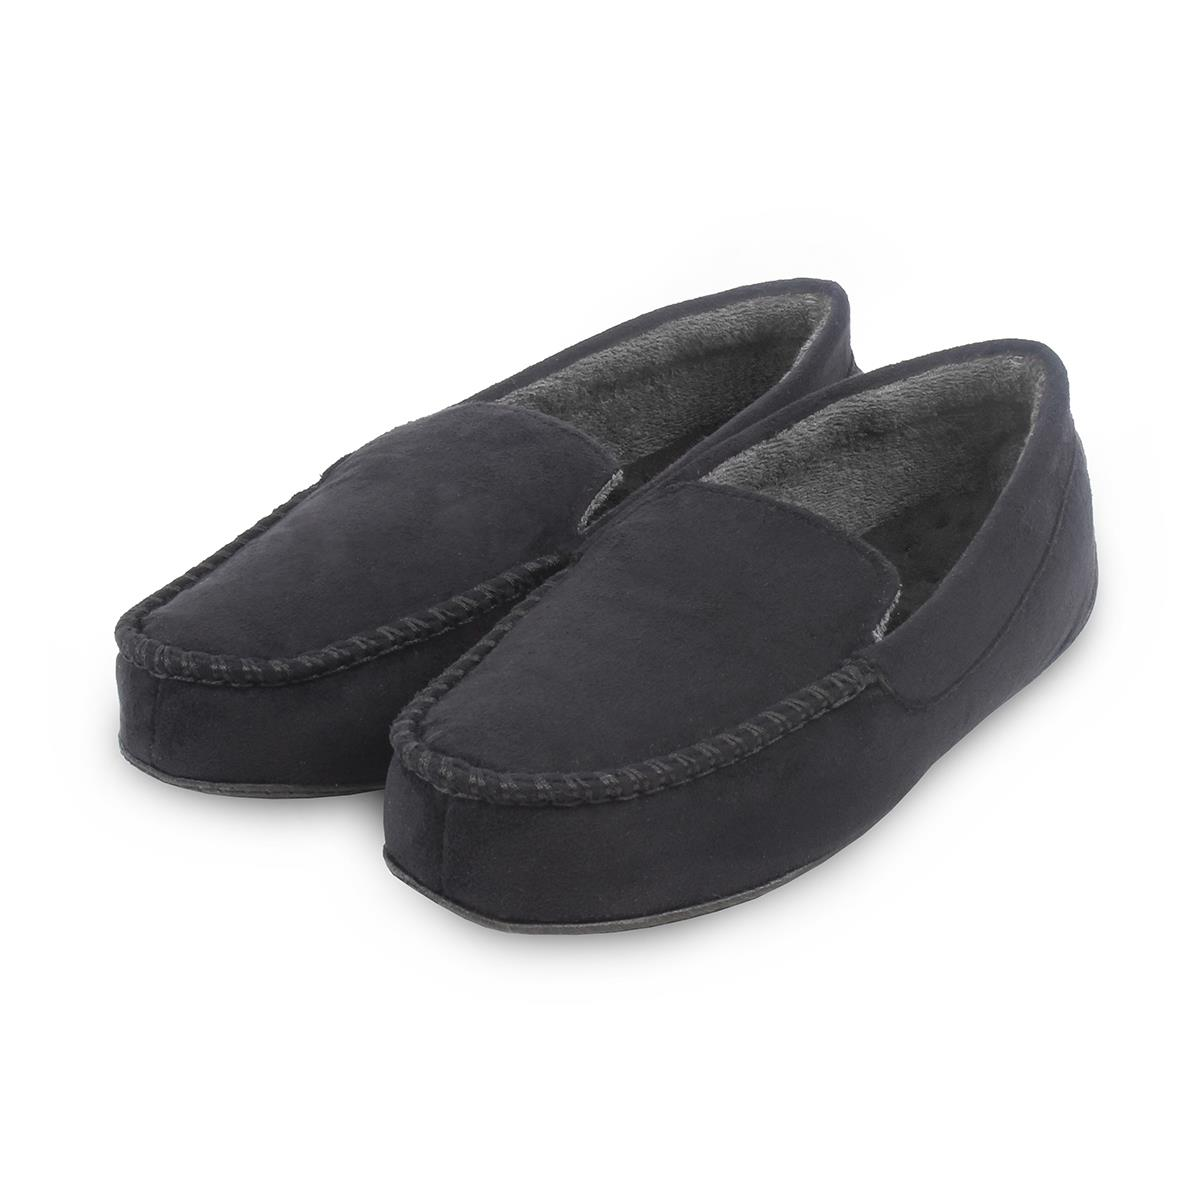 025144887a83 isotoner Mens Pillowstep Driving Moccasin Slippers Black